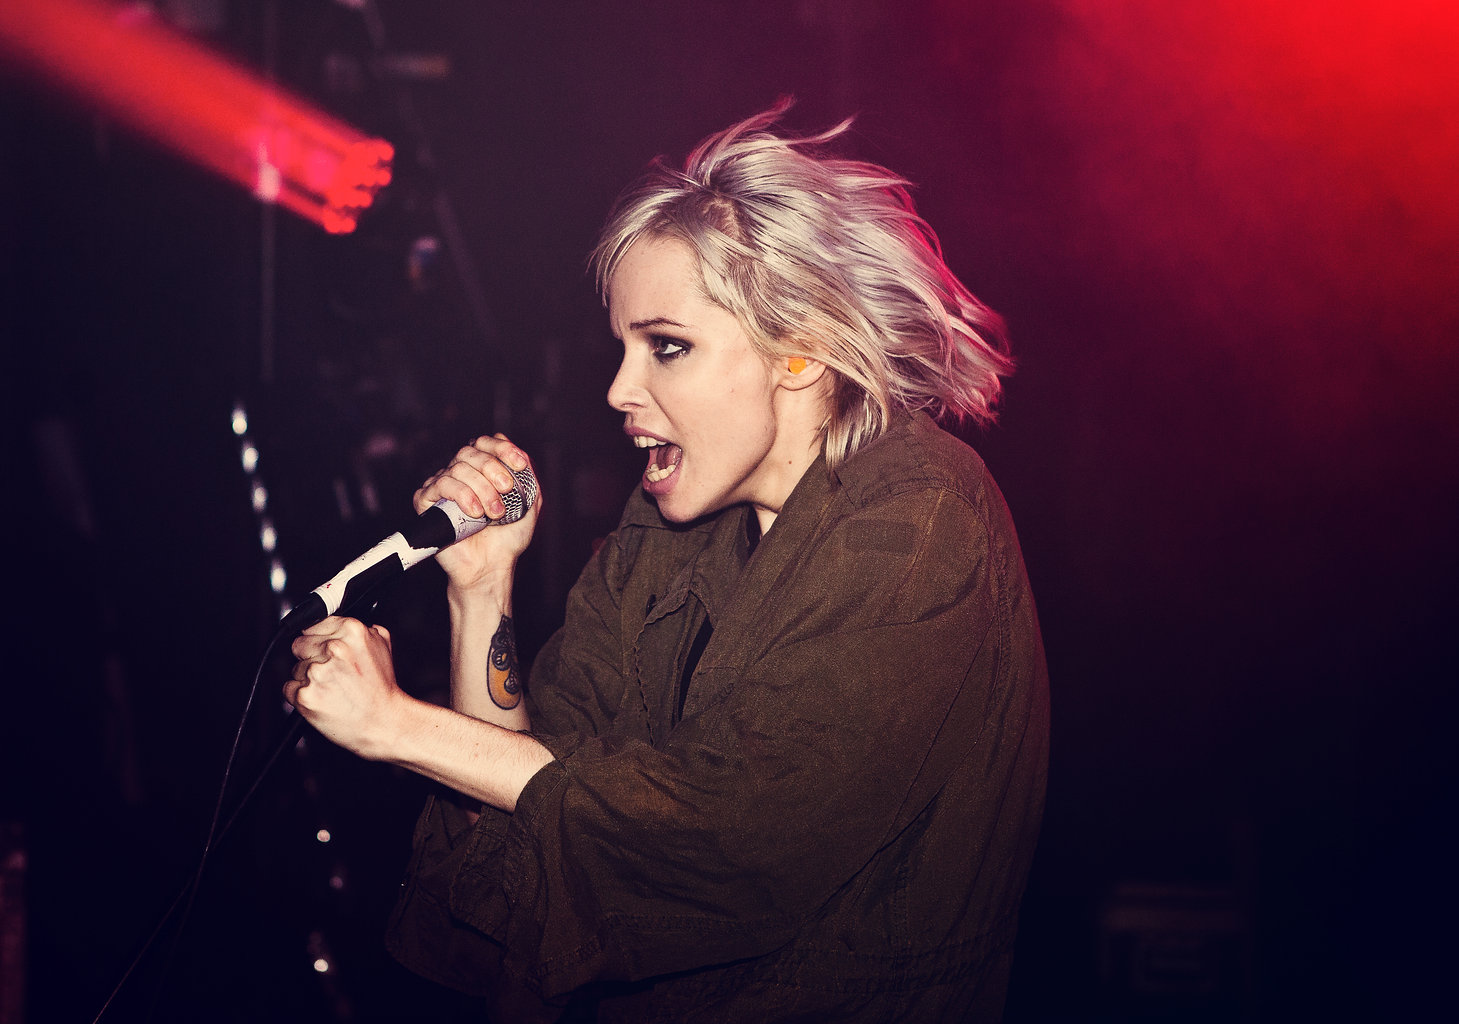 Alice glass, pusy pakistan